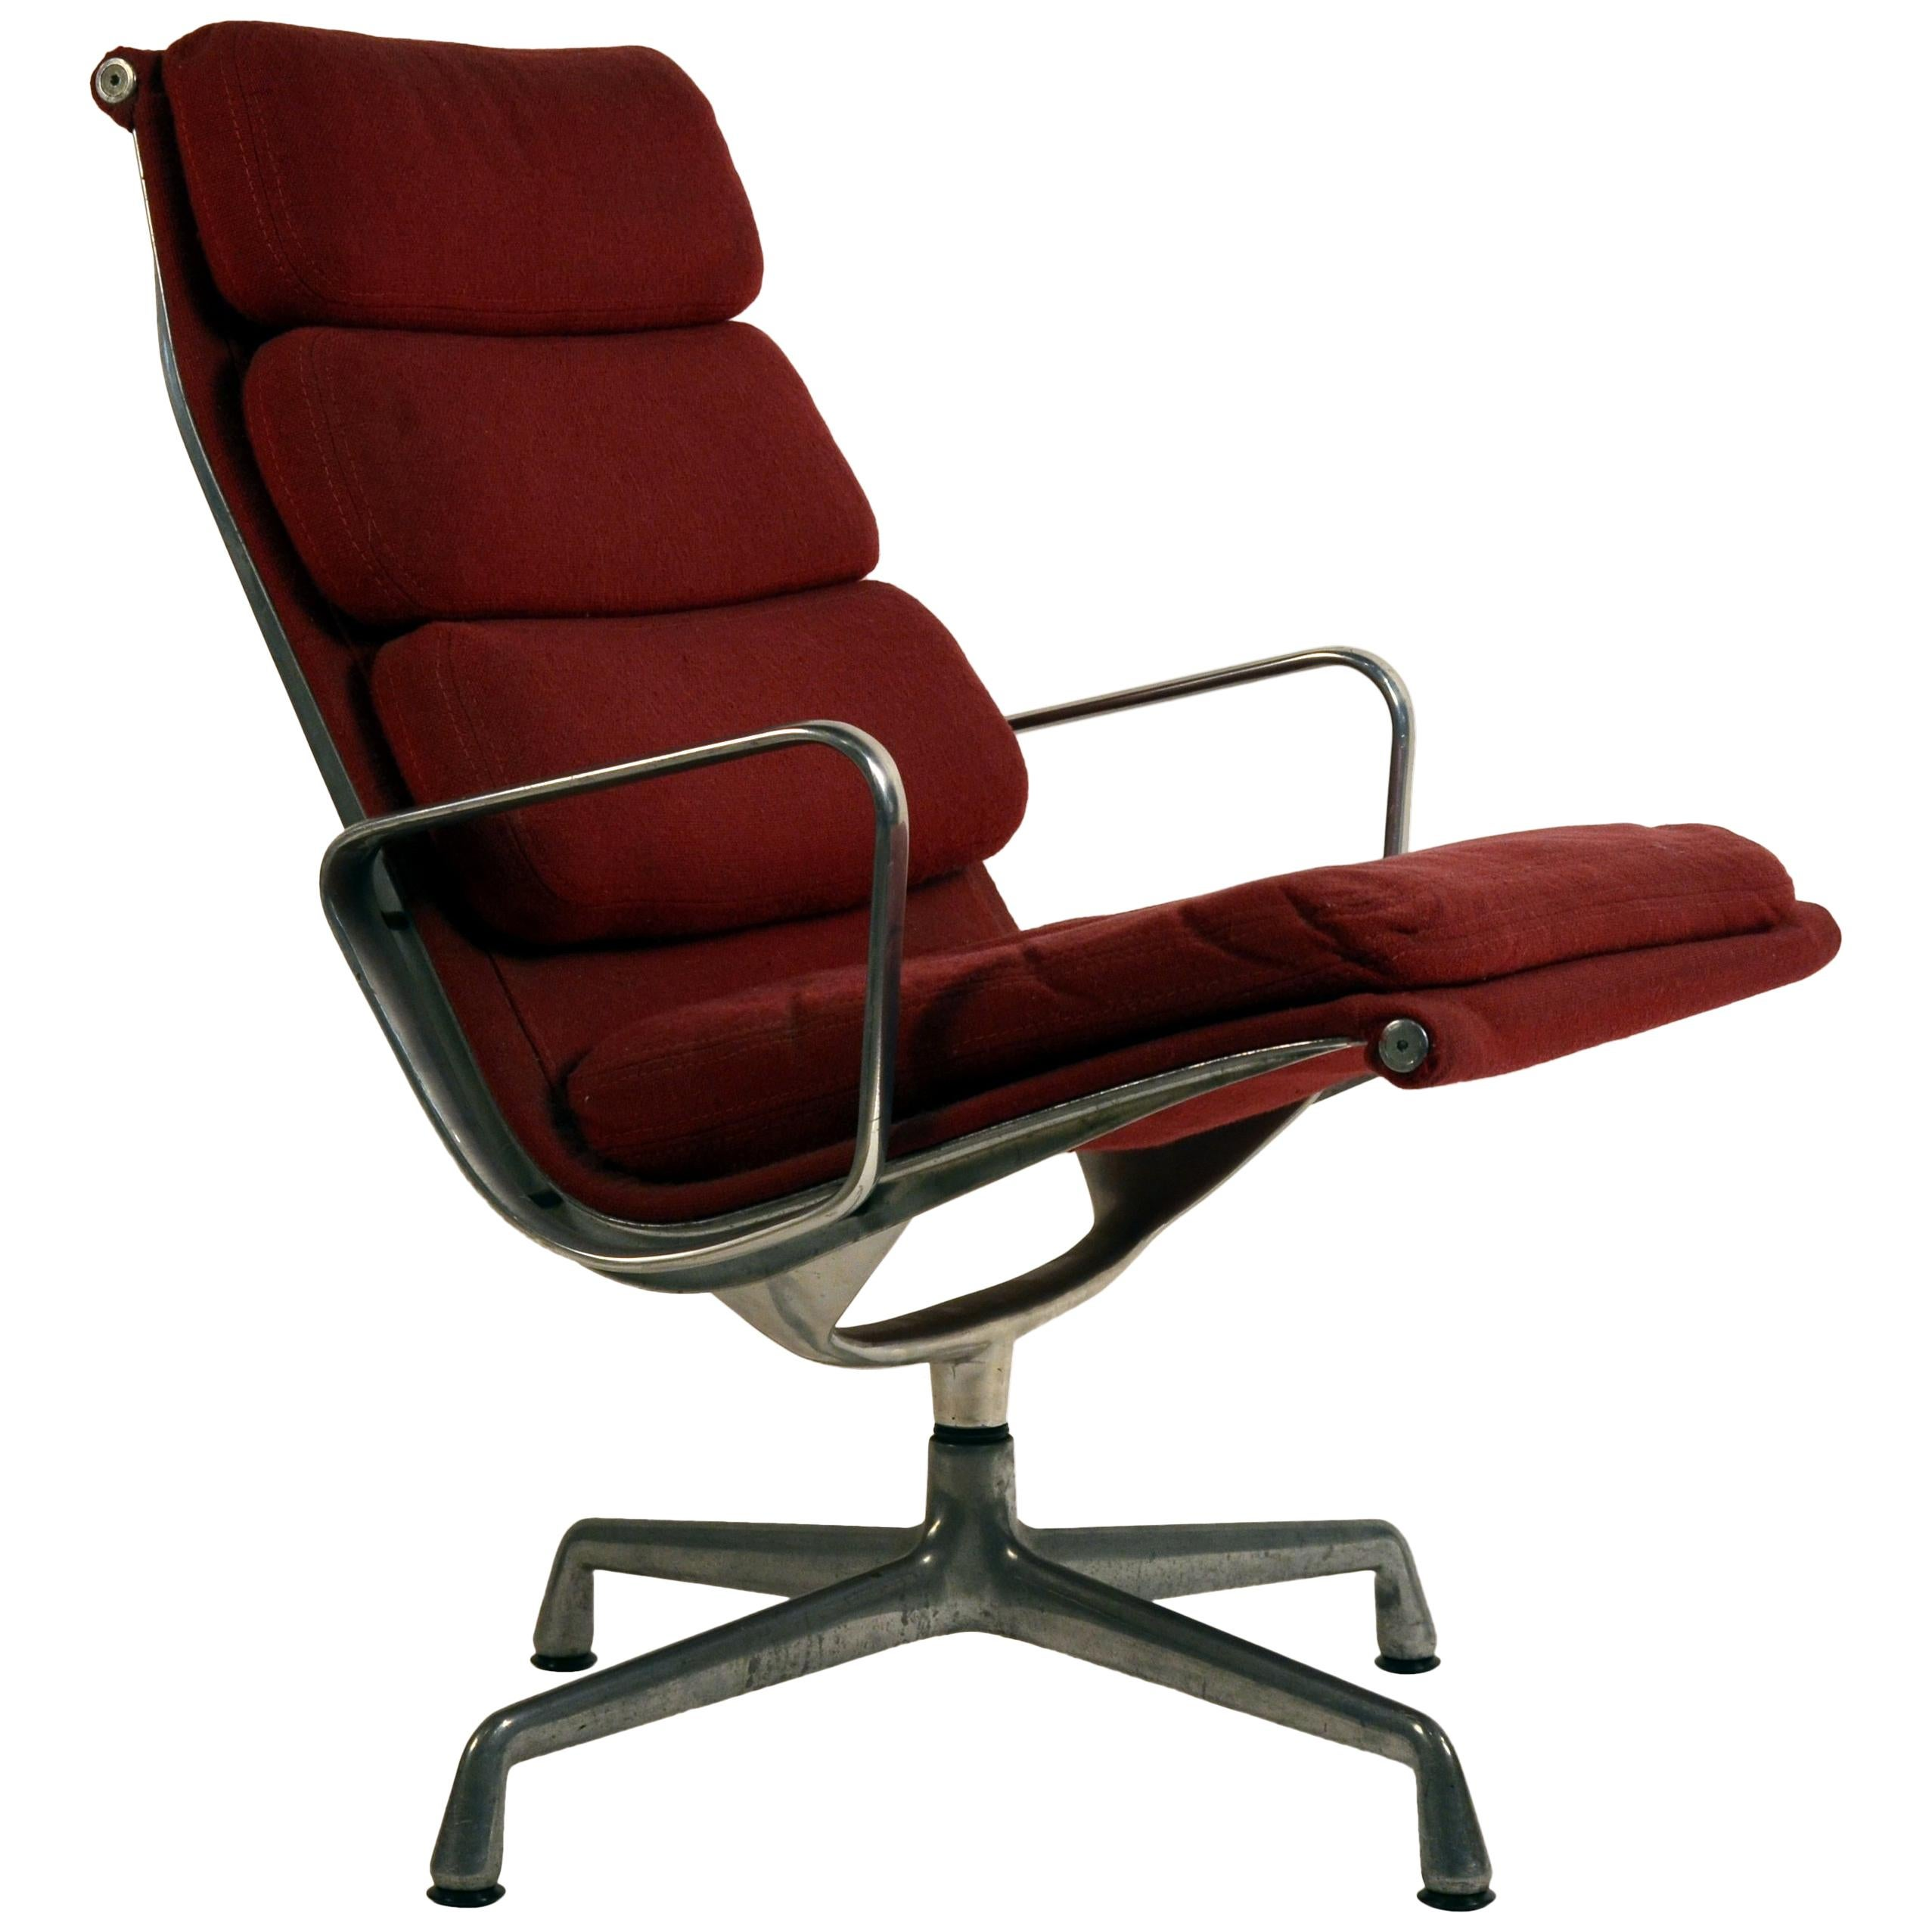 Charles And Ray Eames Lounge Chairs   146 For Sale At 1stdibs